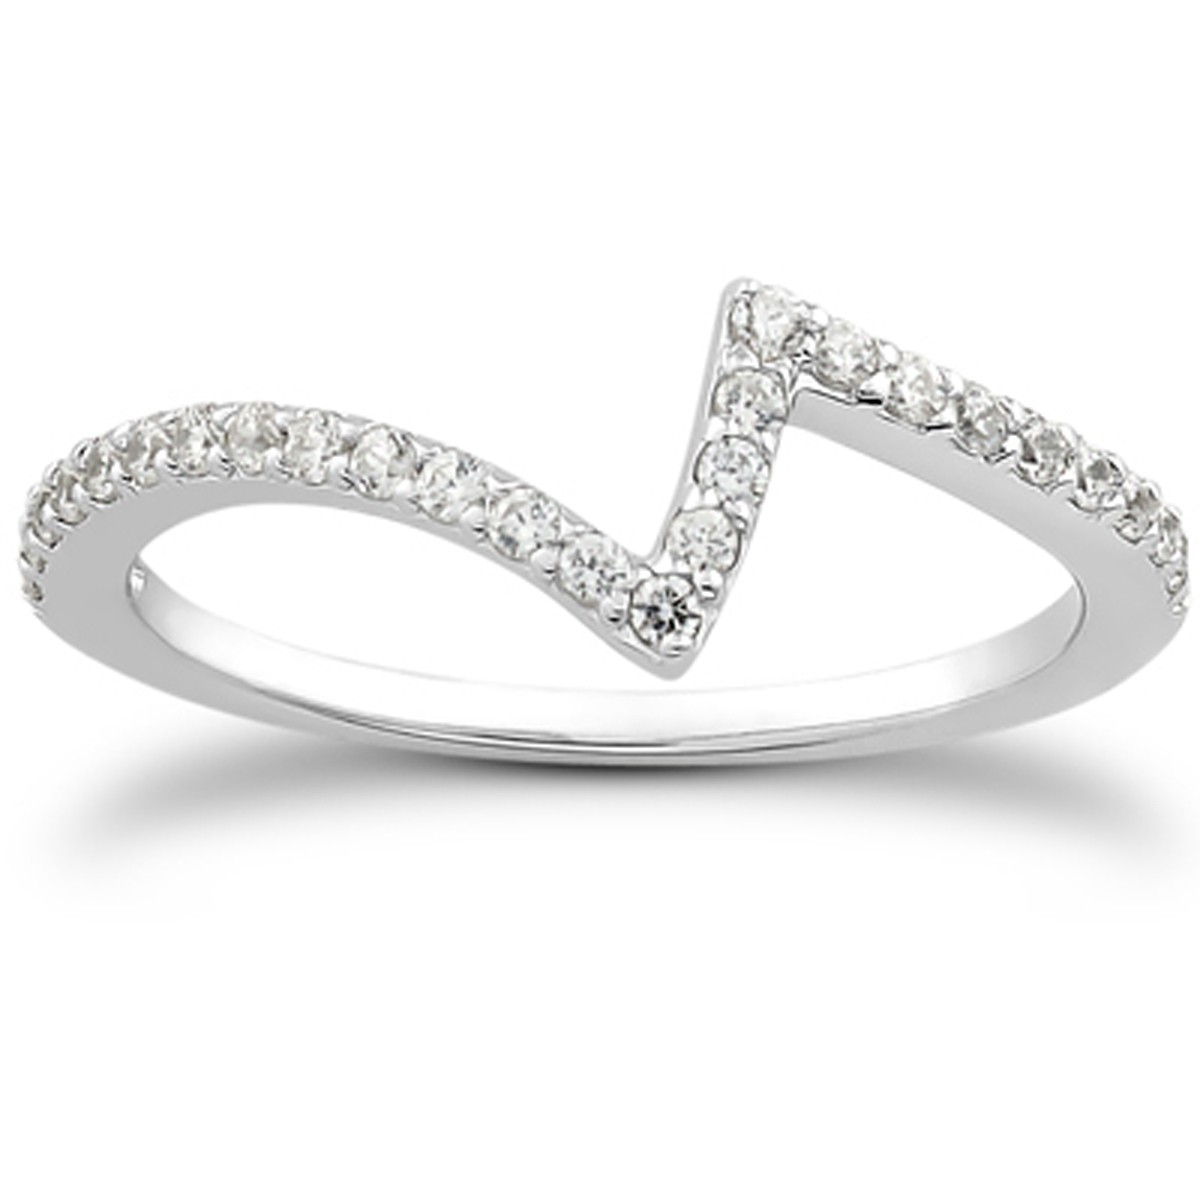 cc601069f2e Fancy Pave Diamond Wedding Ring Band in 14k White Gold - Richard Cannon  Jewelry